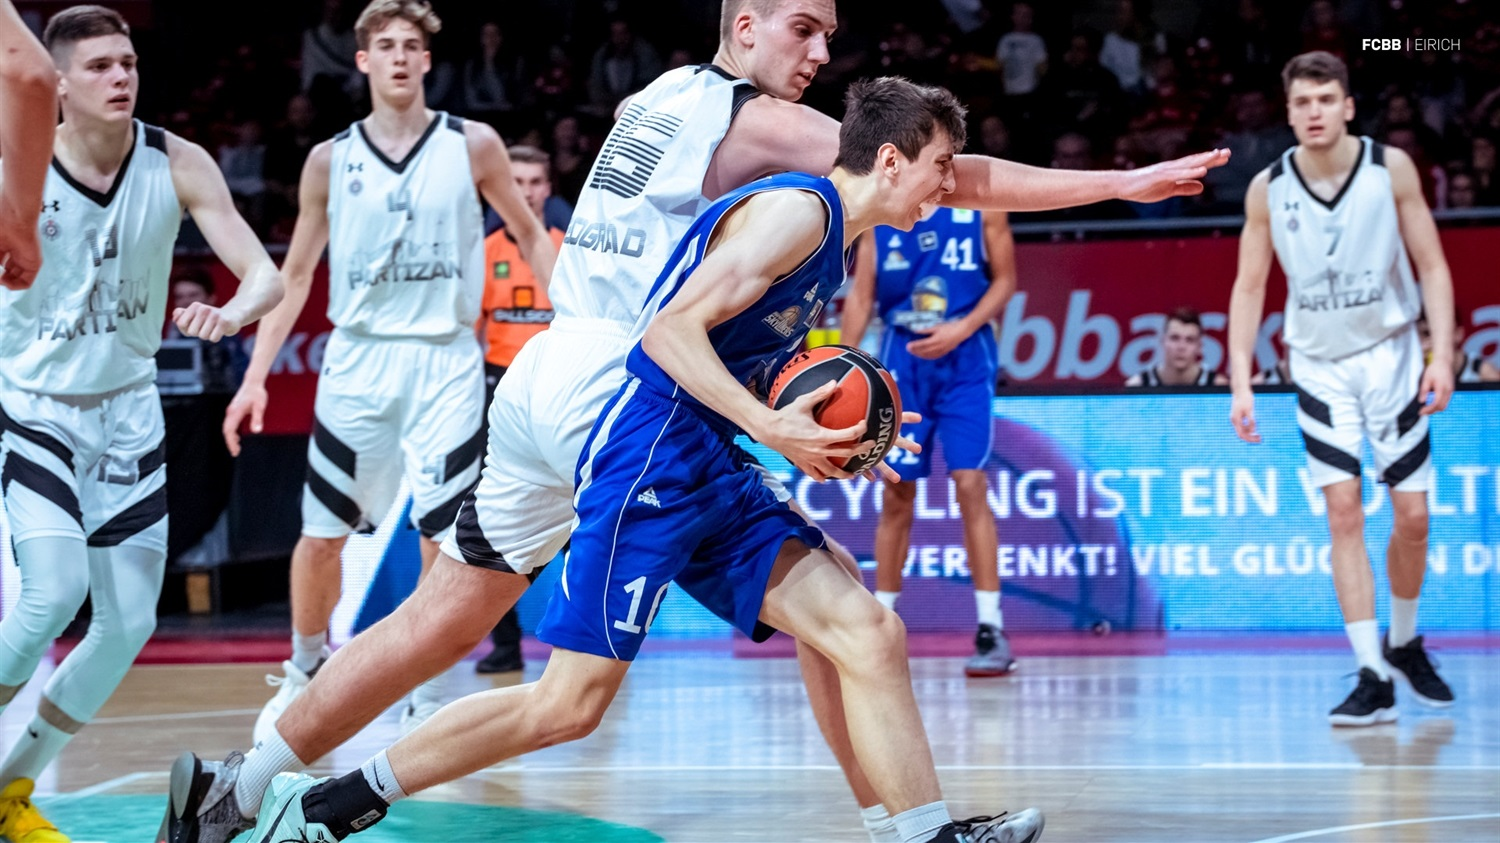 Julius Boehmer - U18 Fraport Skyliners Frankfurt - ANGT Munich 2019 (photo  FCBB - Eirich) JT18